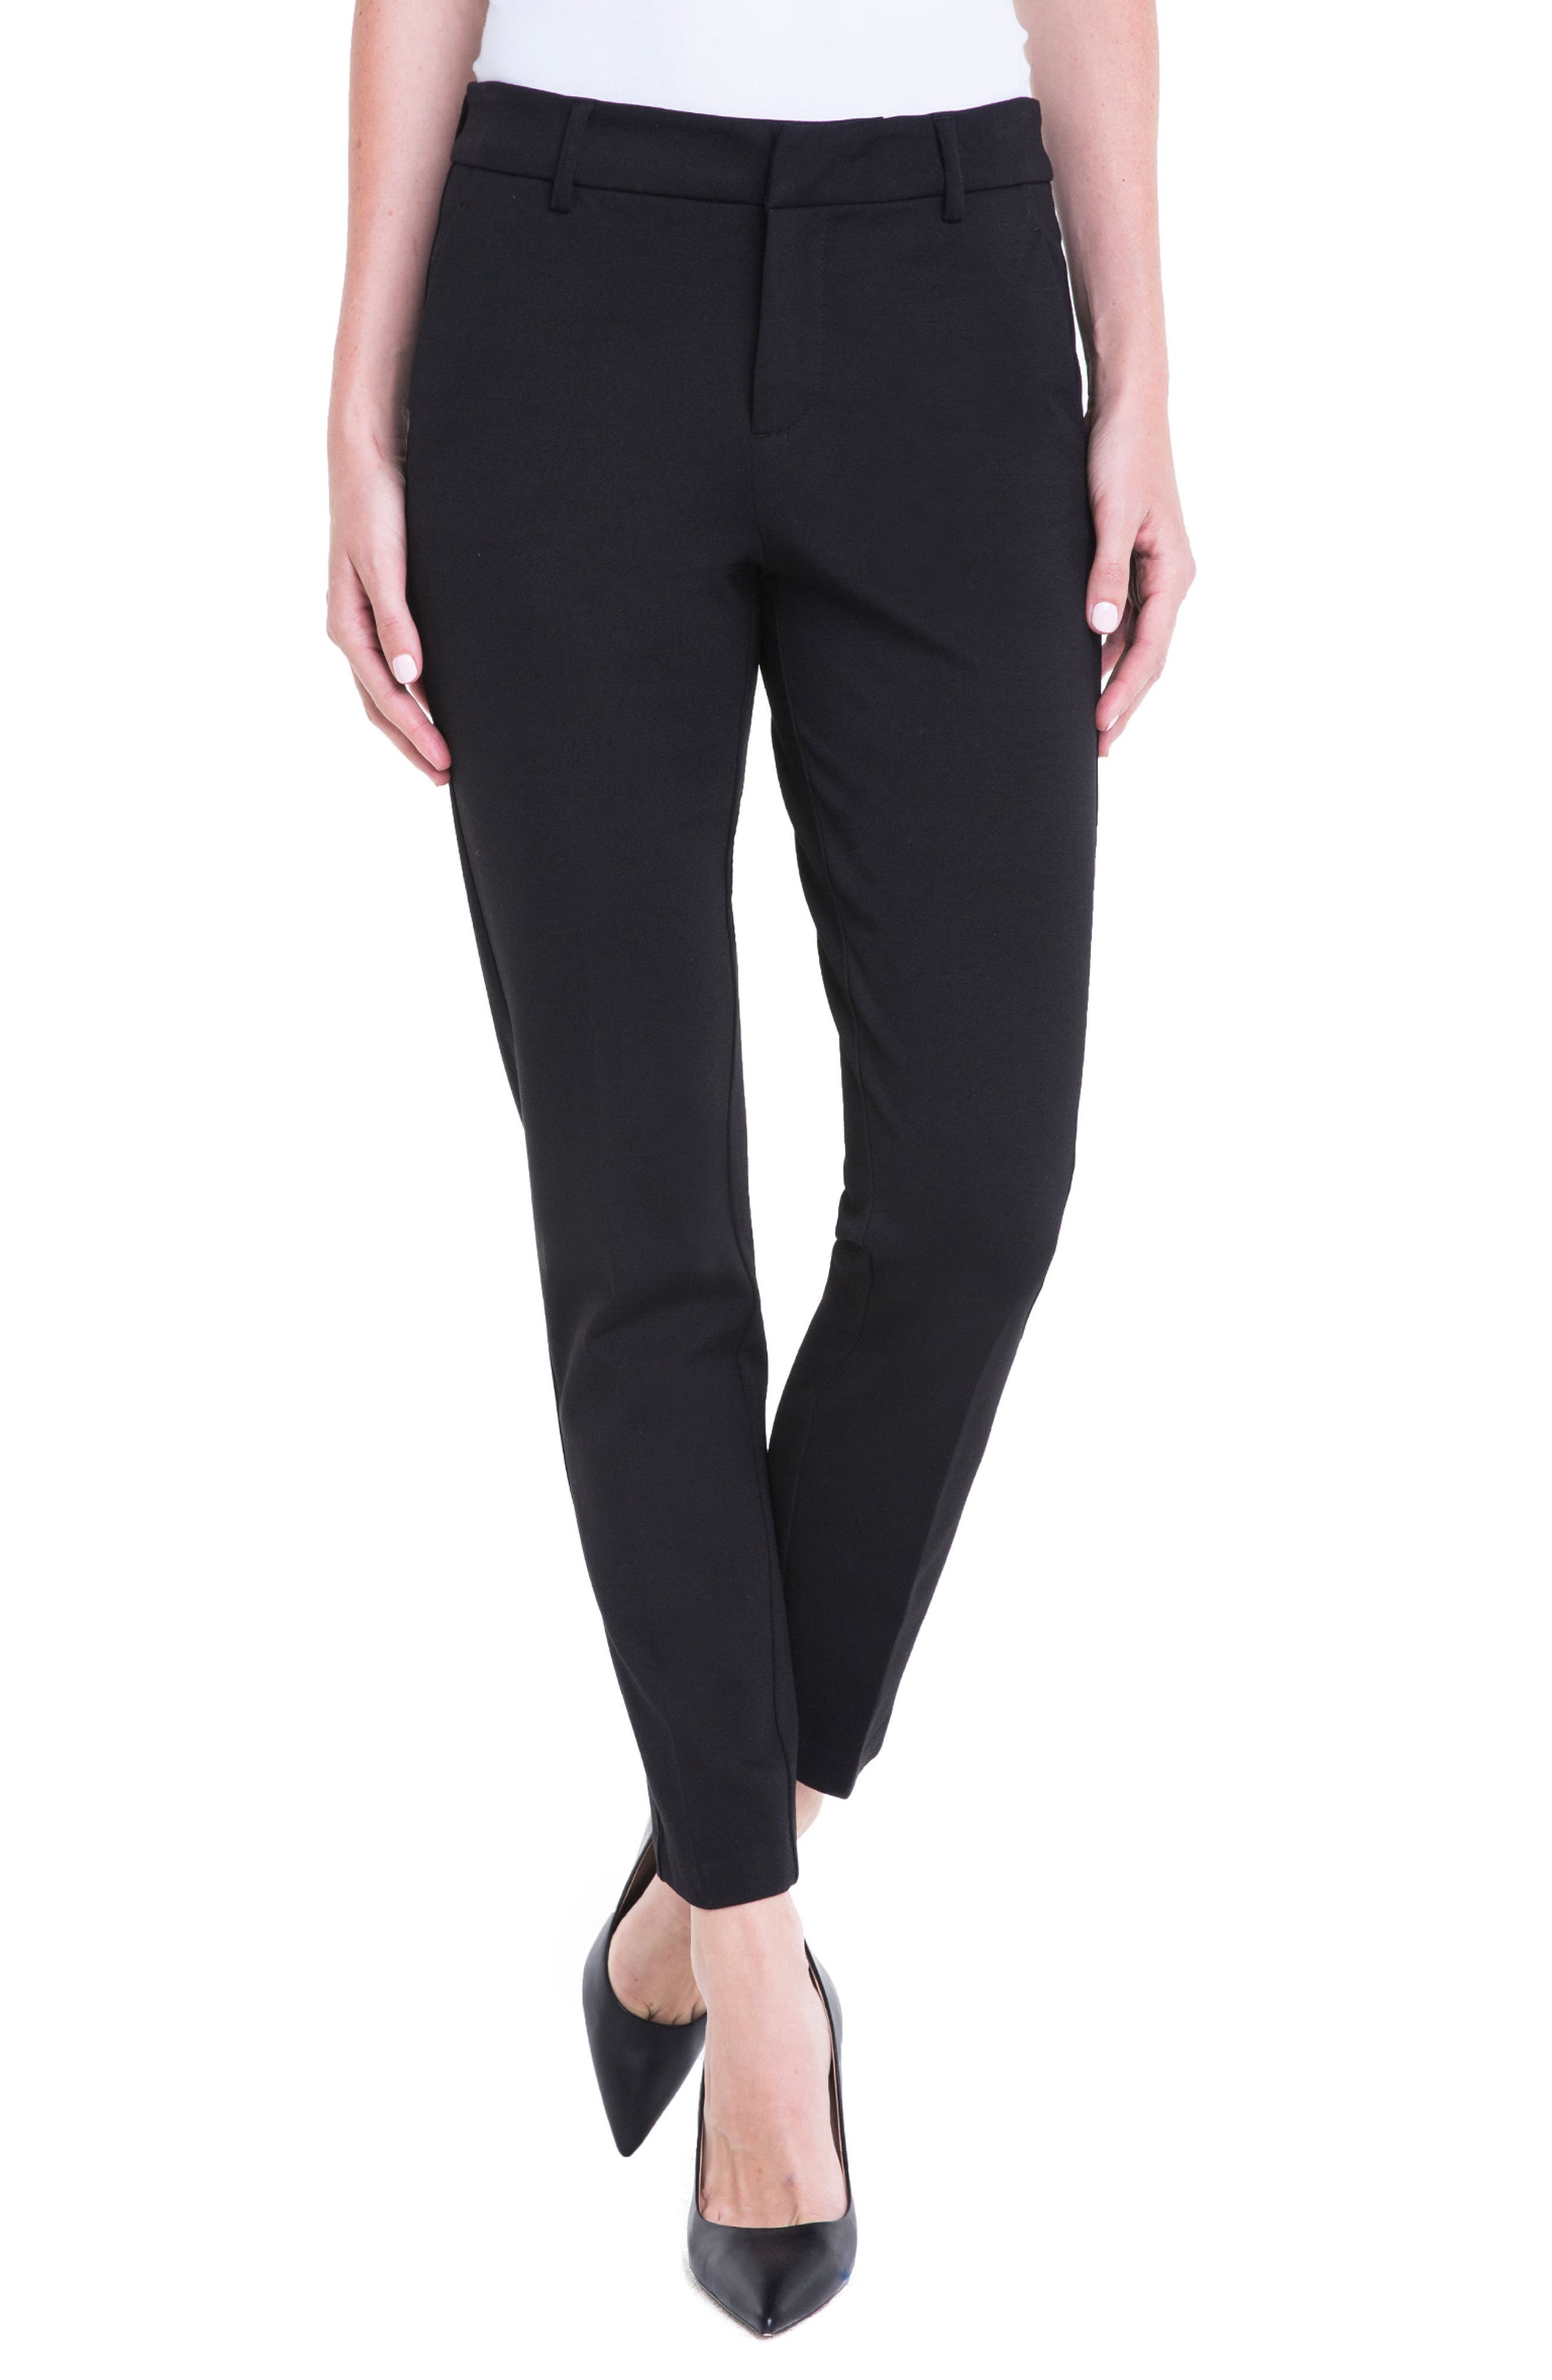 LIVERPOOL, Kelsey Knit Trousers, Main thumbnail 1, color, BLACK